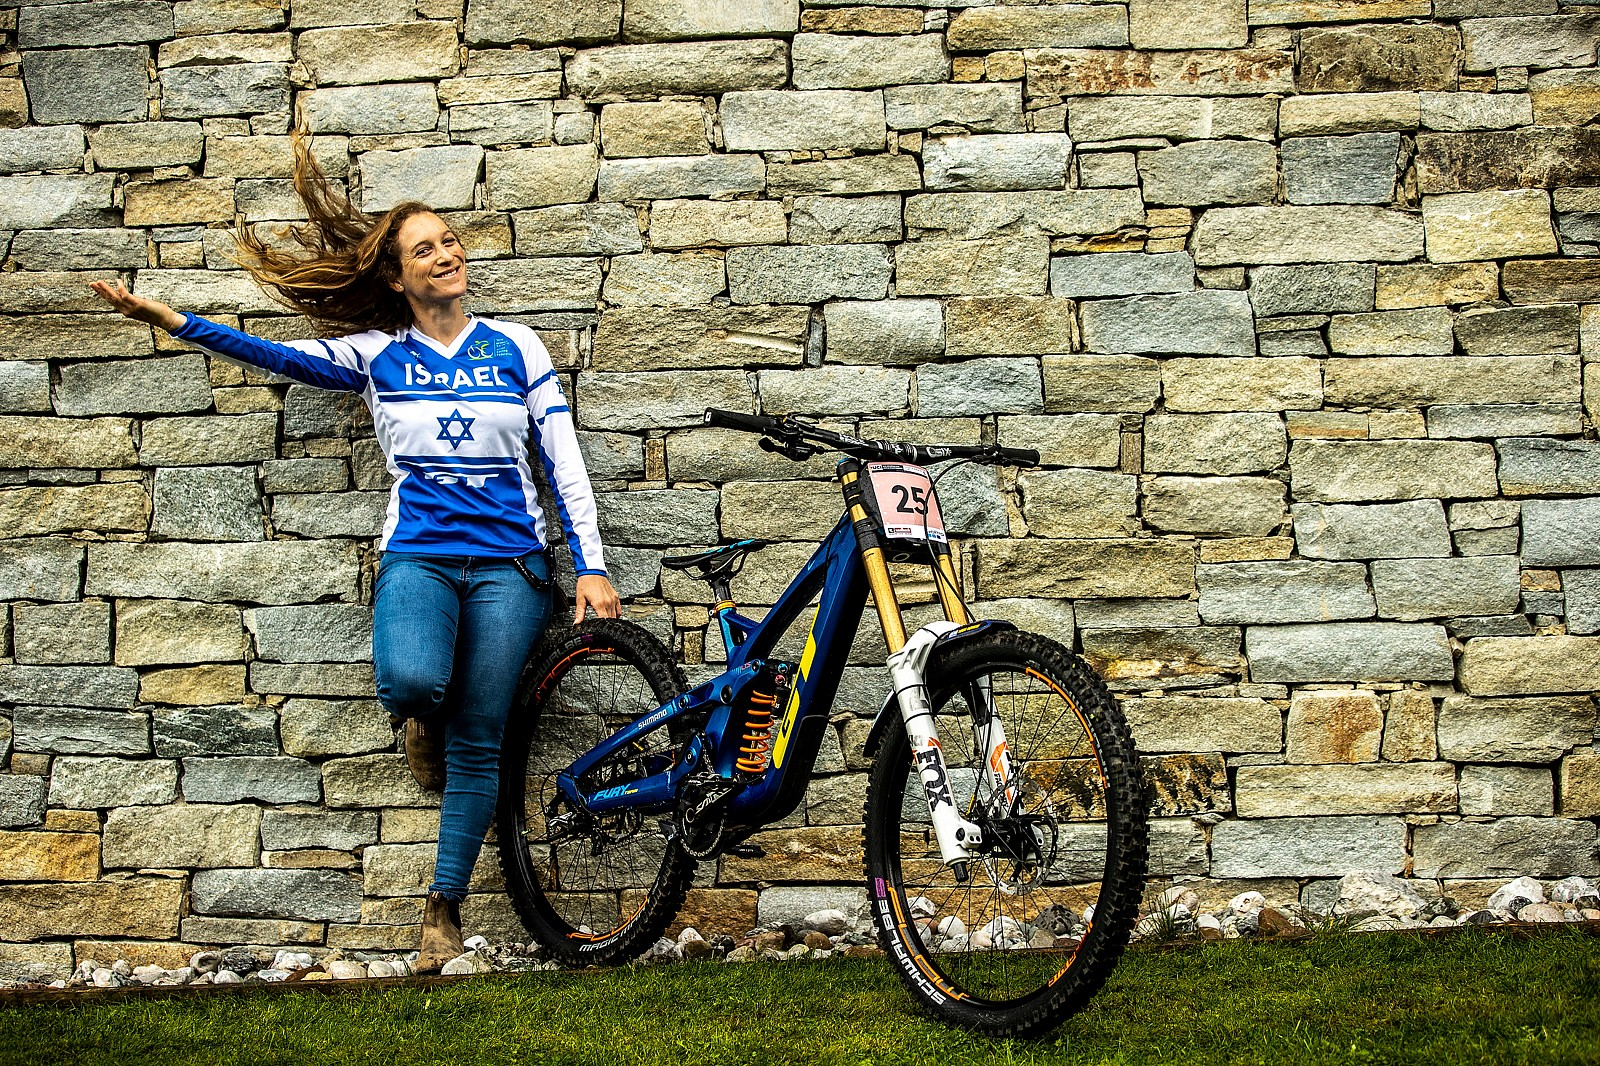 Noga Korem, Amped Up with Her GT Fury - WORLD CHAMPS BIKES - GT Factory Racing - Mountain Biking Pictures - Vital MTB